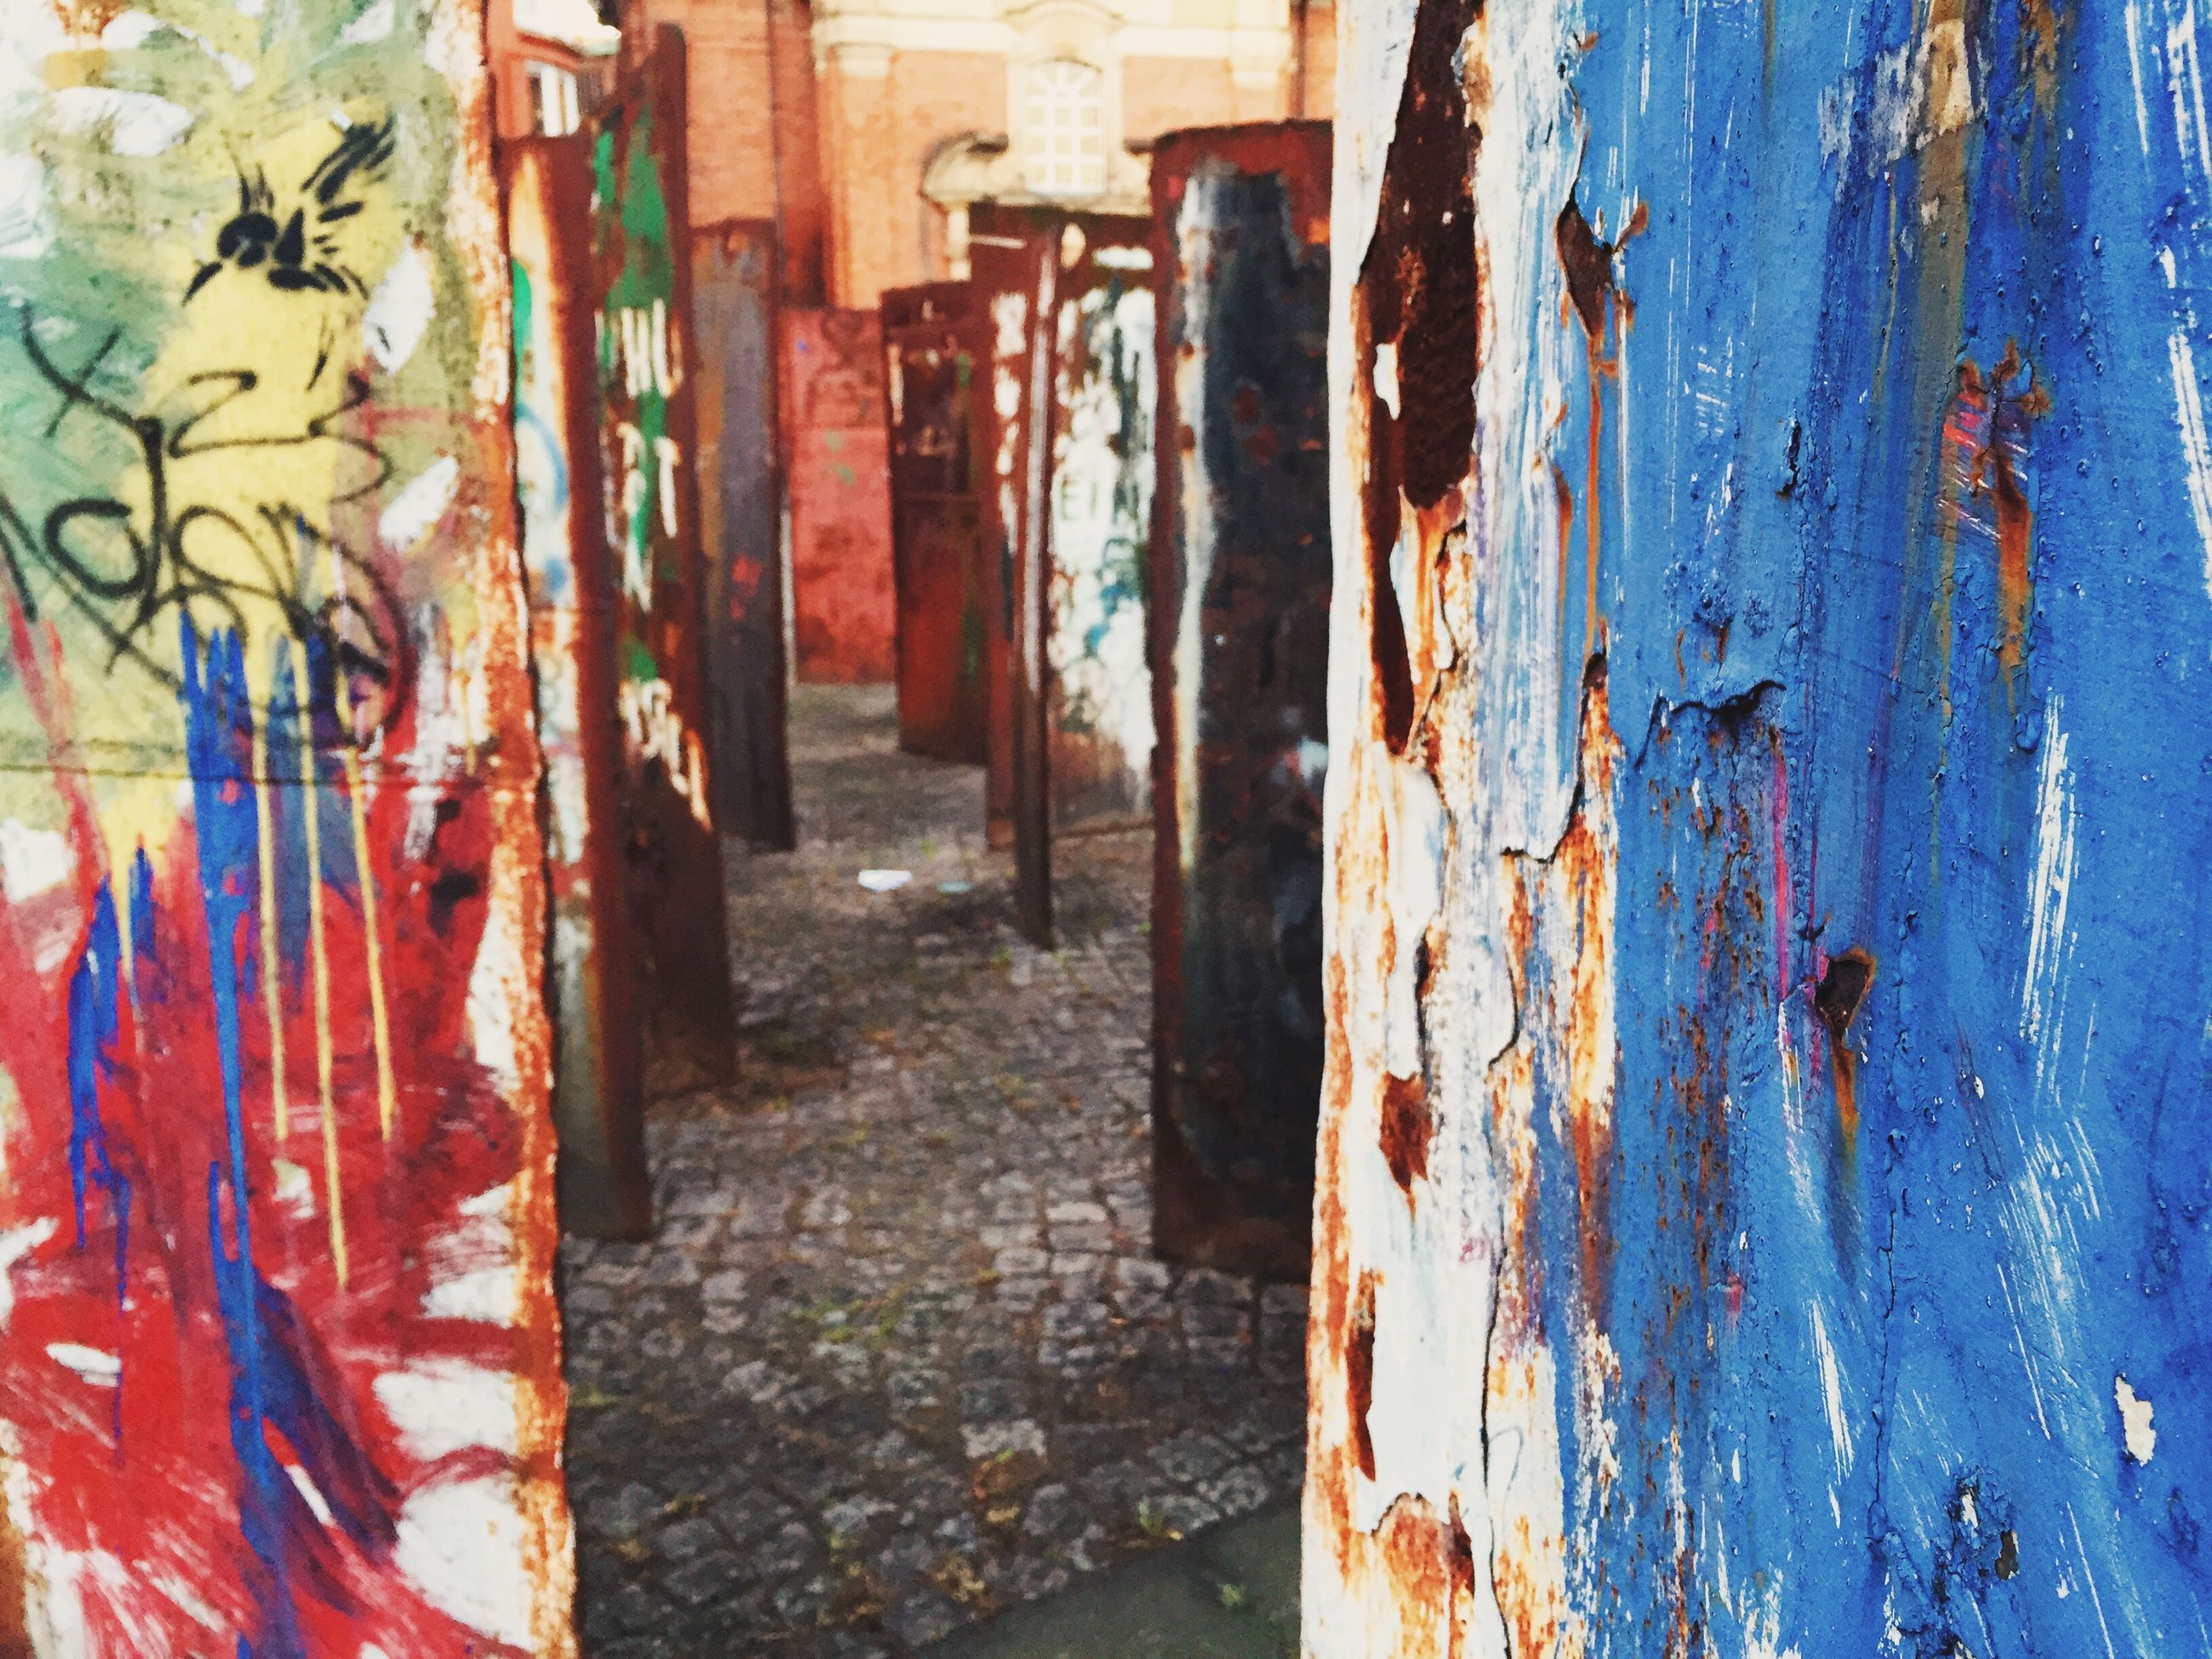 built structure, architecture, graffiti, building exterior, weathered, wall - building feature, damaged, old, deterioration, run-down, abandoned, obsolete, wall, house, bad condition, messy, peeling off, building, day, outdoors